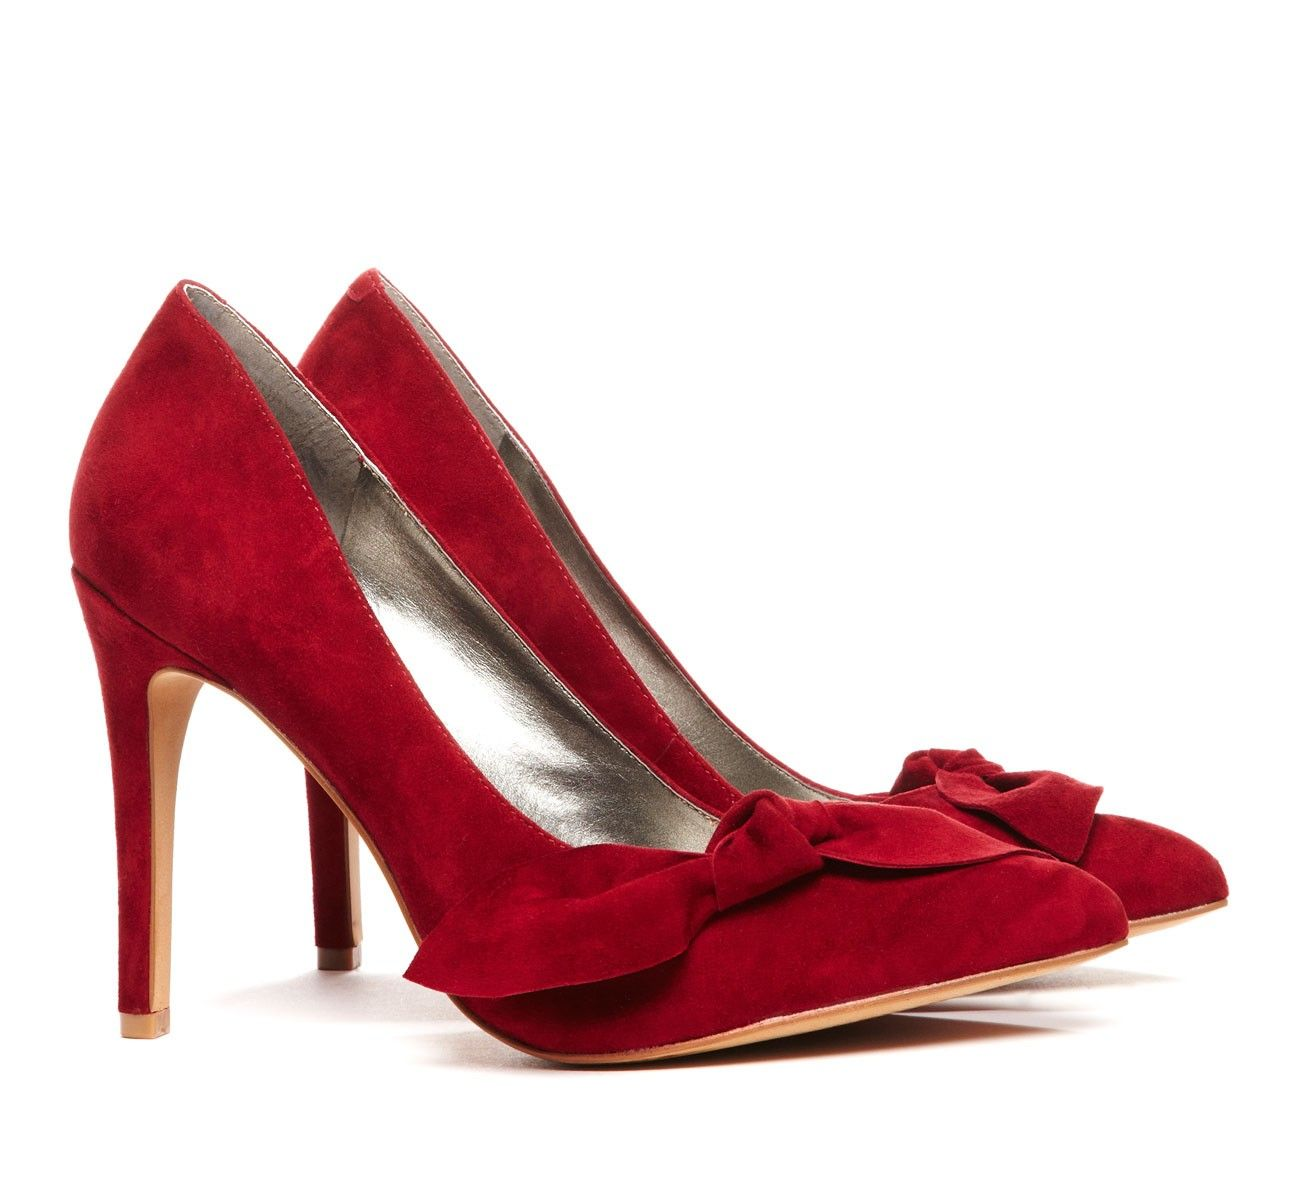 Love The Red And The Bow Fabulous Shoes Fashion Shoes Suede Bow